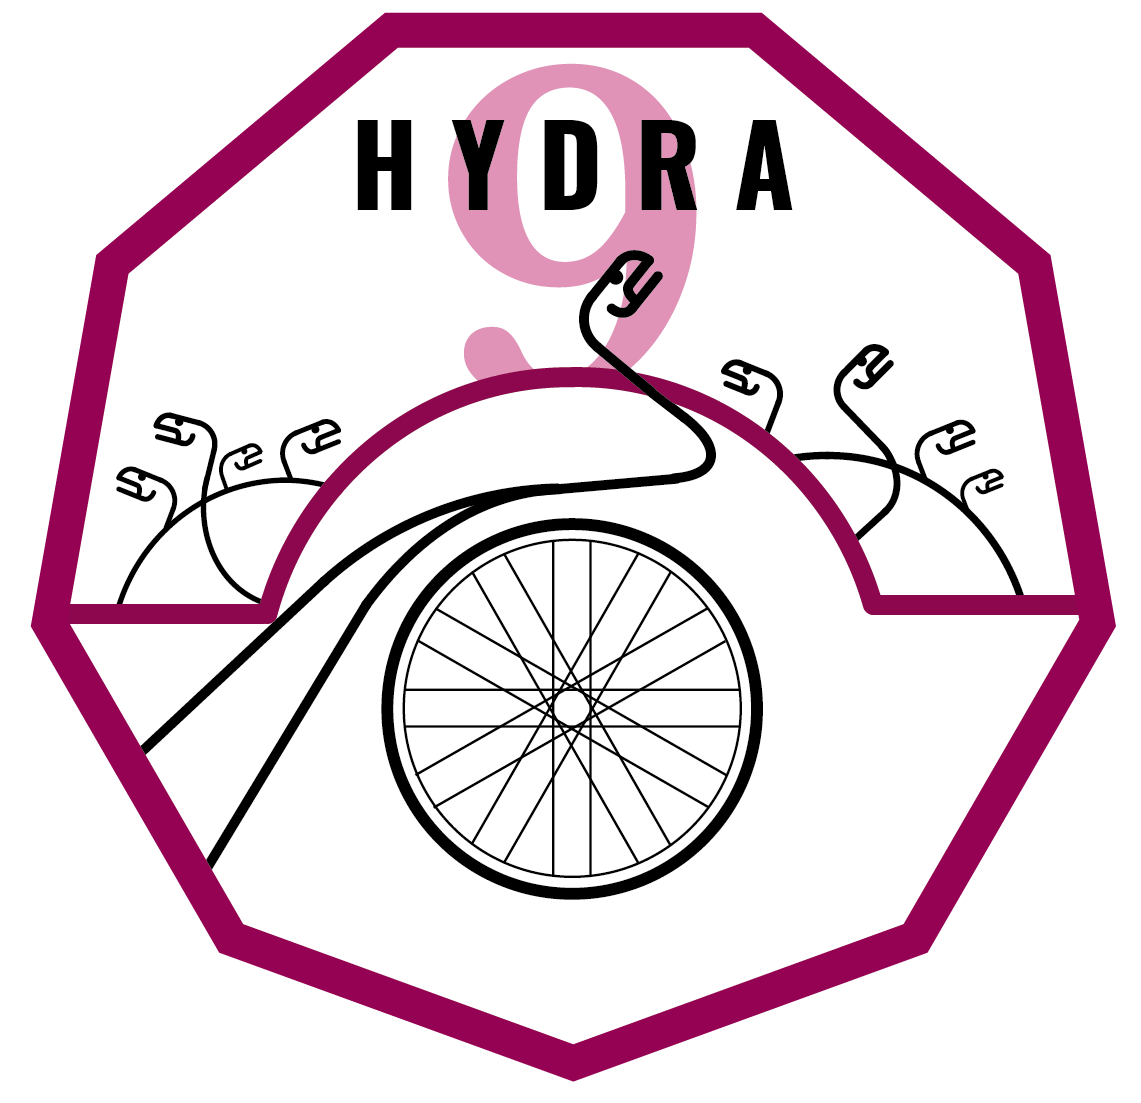 hydra-9-badge